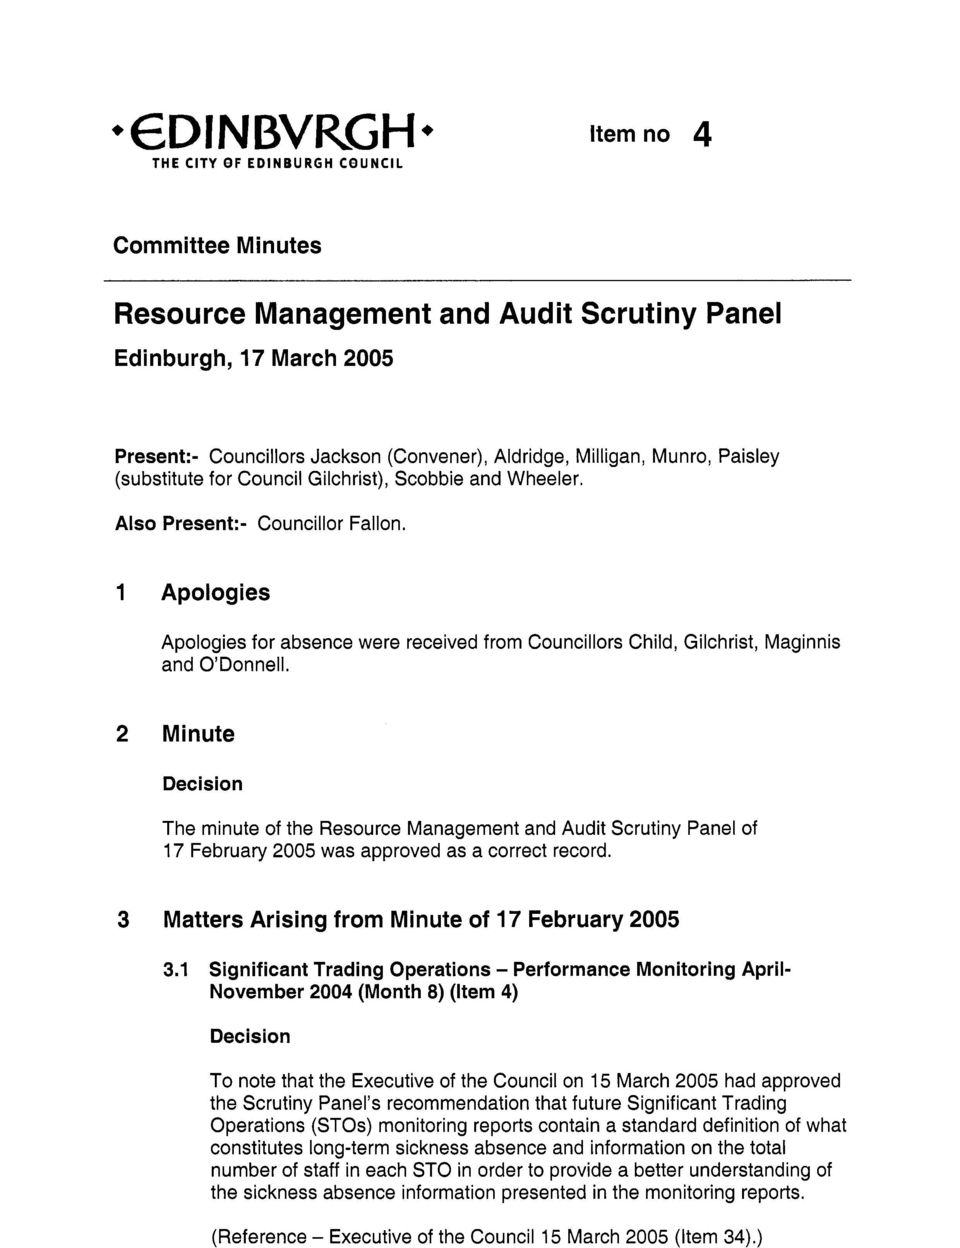 2 Minut Dcision Th minut of th Rsourc Managmnt and Audit Scrutiny Panl of 17 Fbruary 2005 was approvd as a corrct rcord. 3 Mattrs Arising from Minut of 17 Fbruary 2005 3.